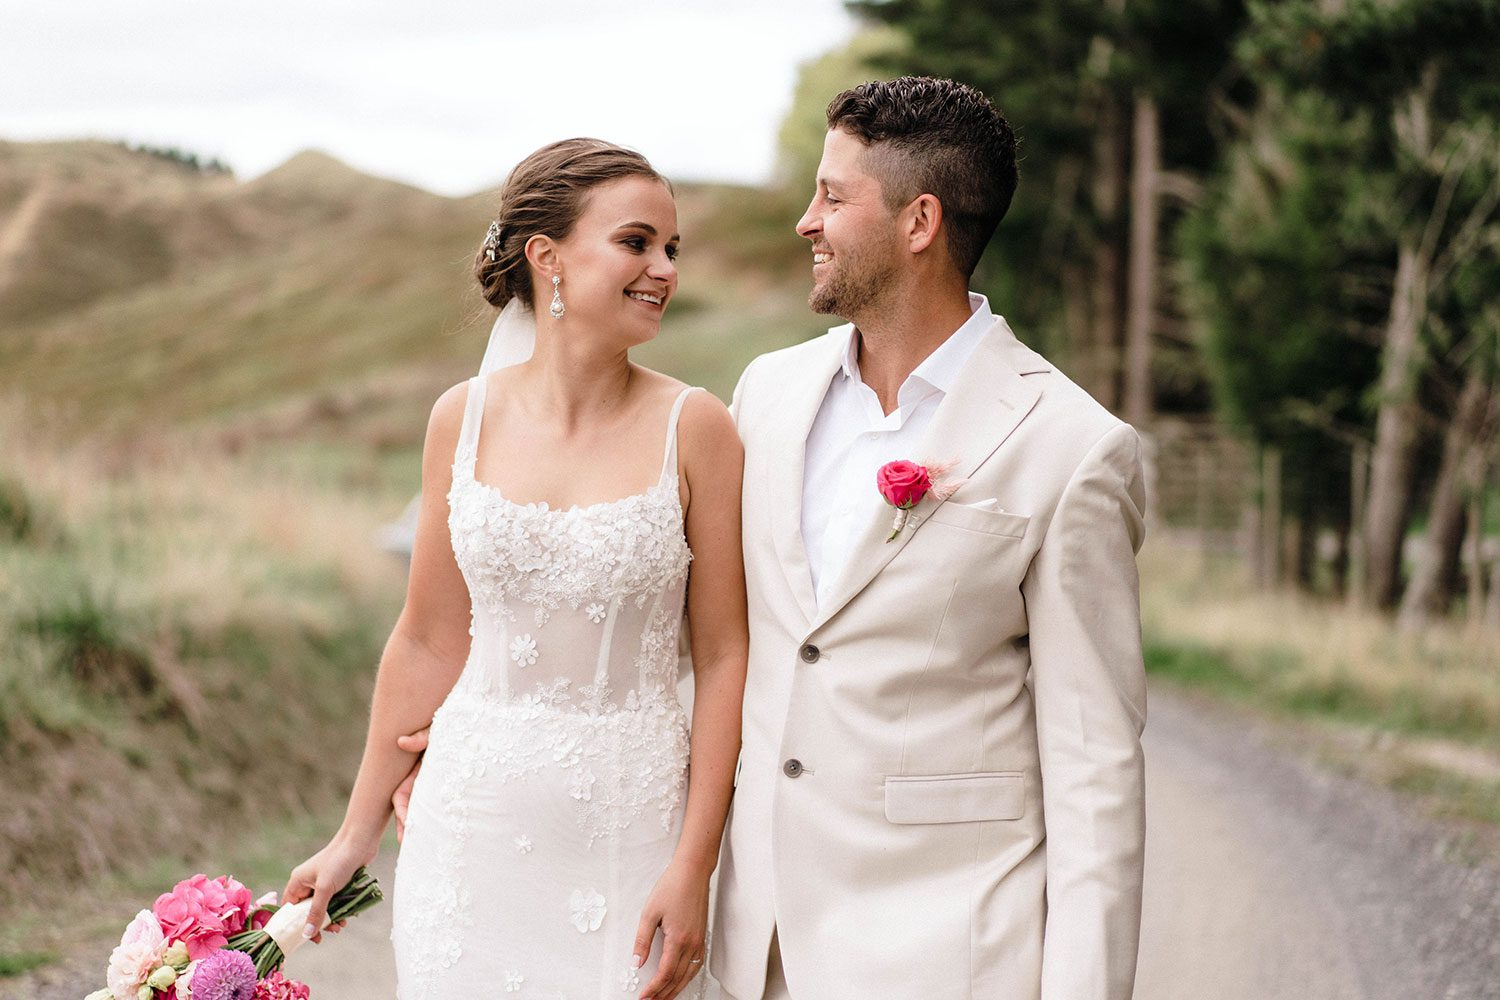 Bride wears bespoke E'More lace gown with boned bodice with hand beaded flower applique and full lace train by Auckland wedding dress maker Vinka designs - with groom looking at each other